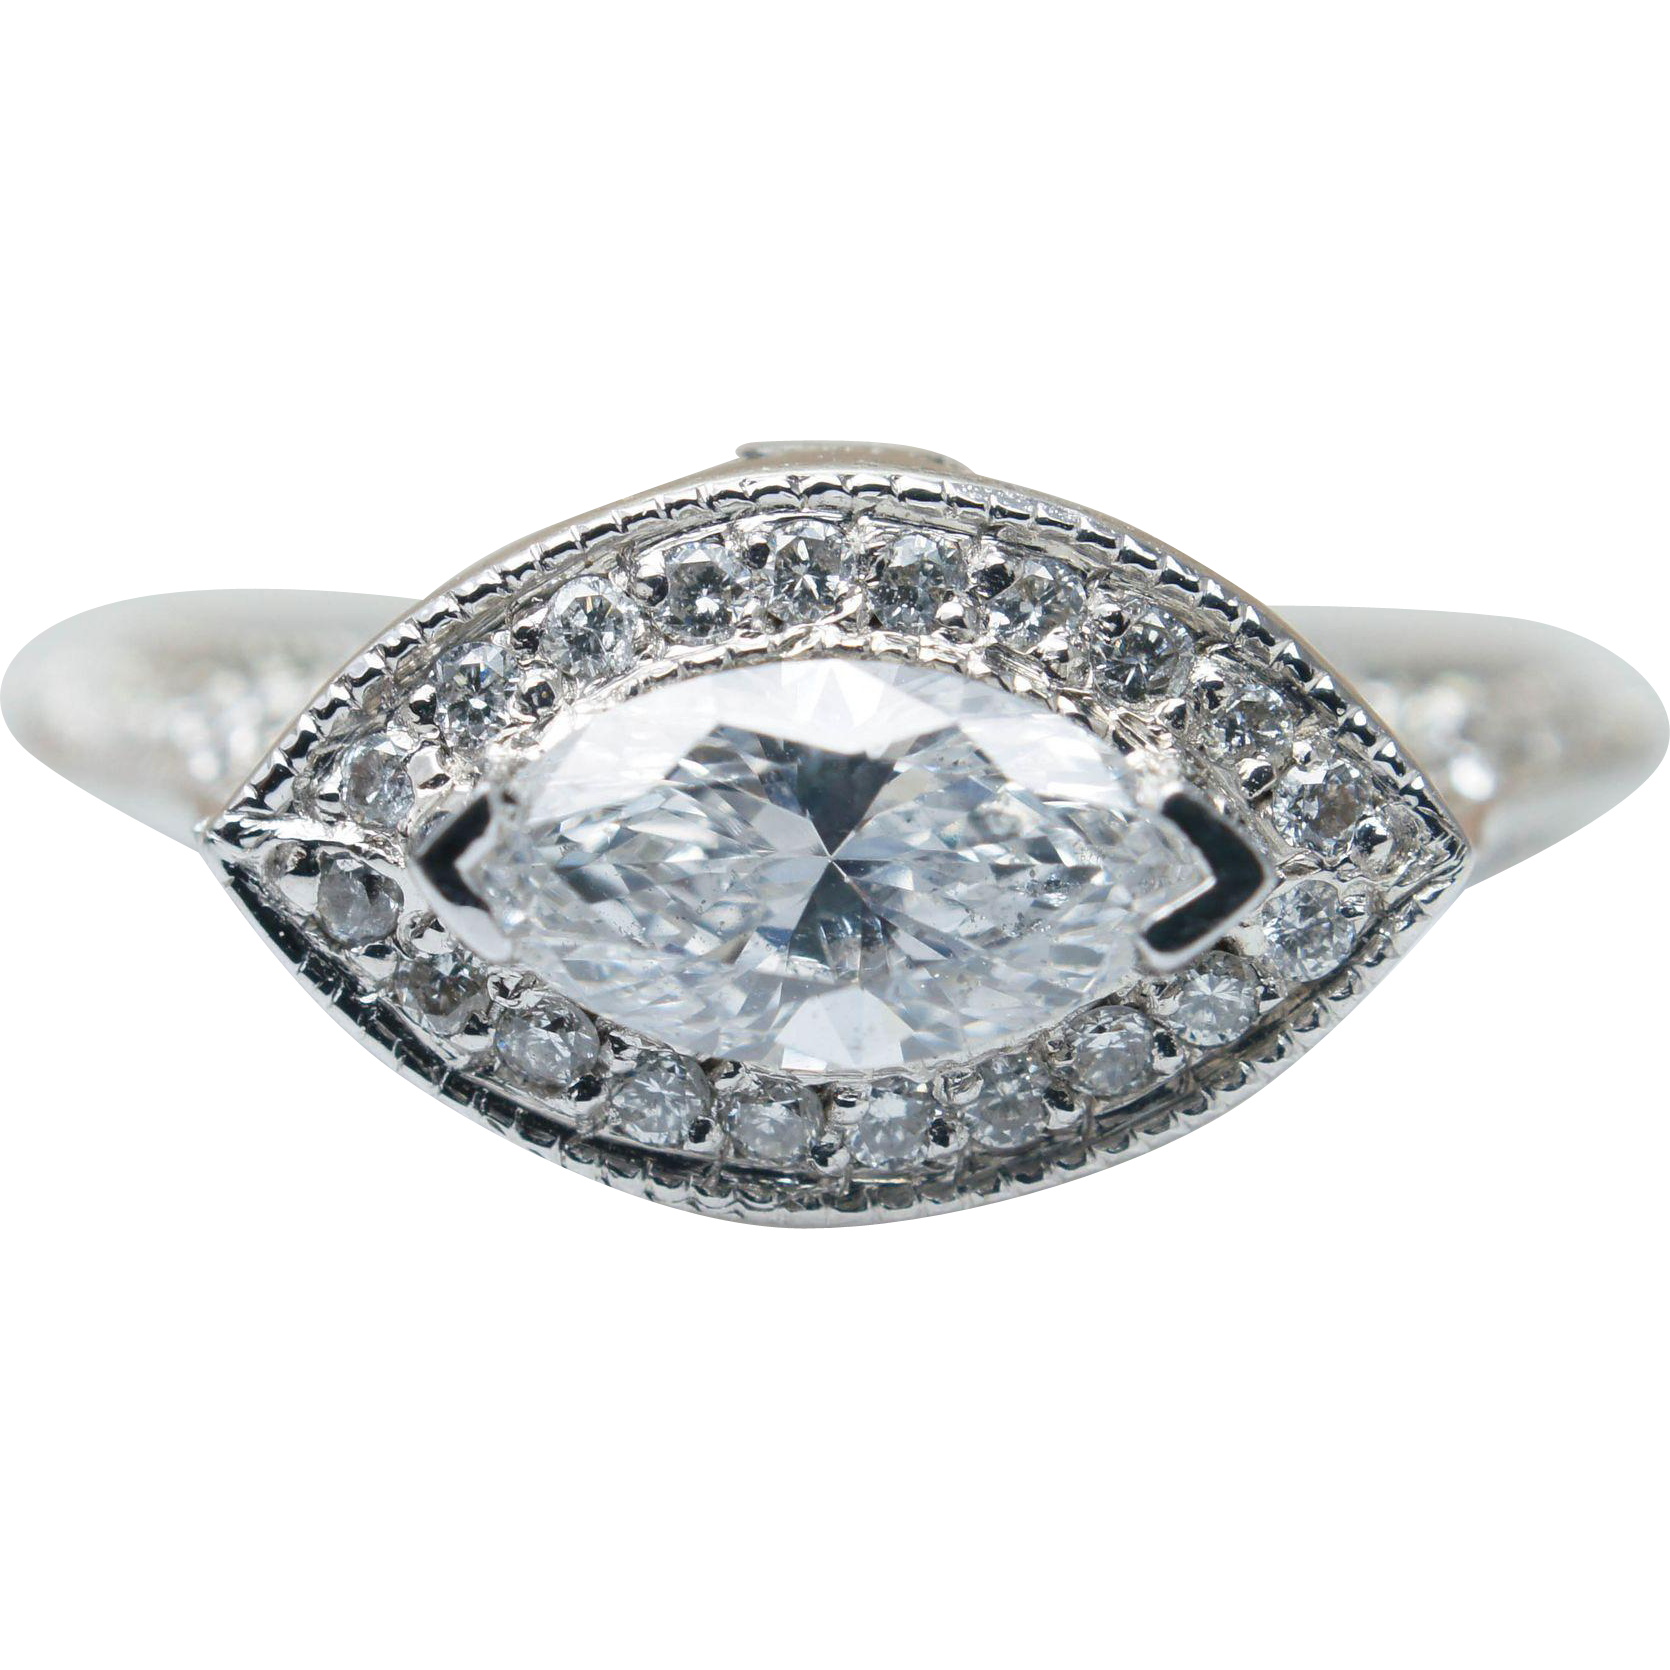 1.09ctw East West Marquise Diamond Engagement Ring in 18k White Gold